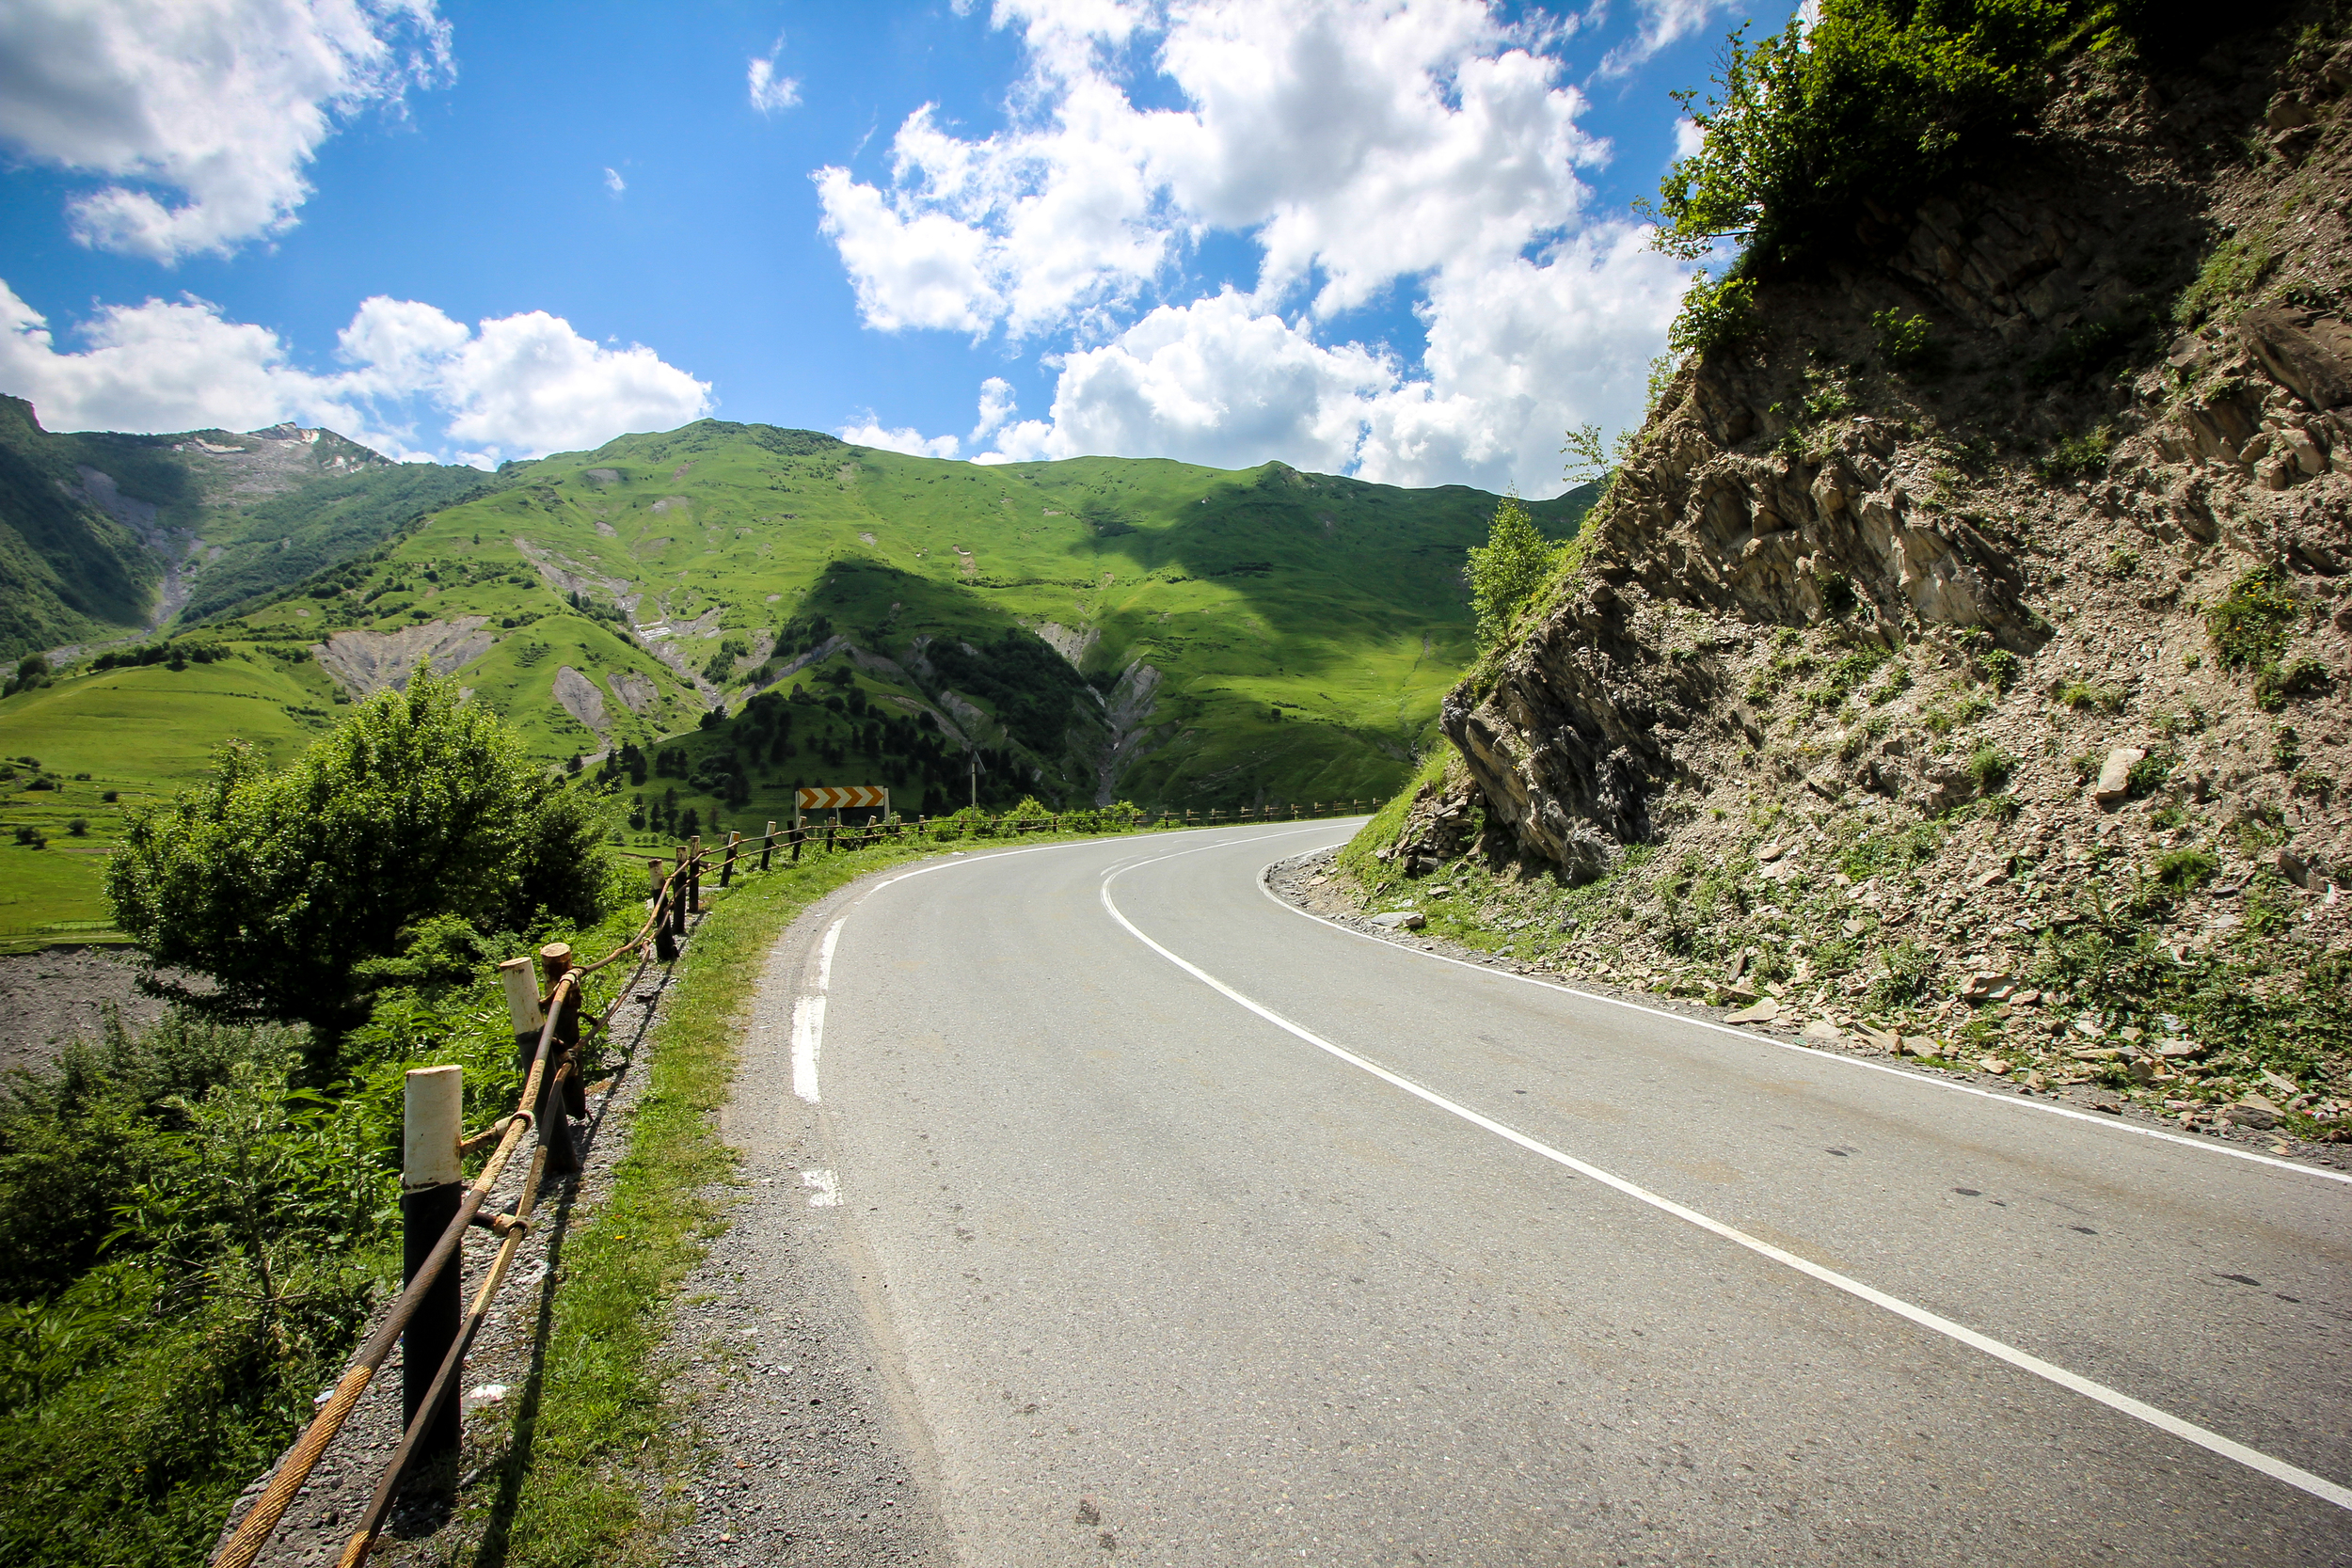 Georgian Military Road.  The way to Kazbegi is steep and at some point dangerous. But check out the scenery!